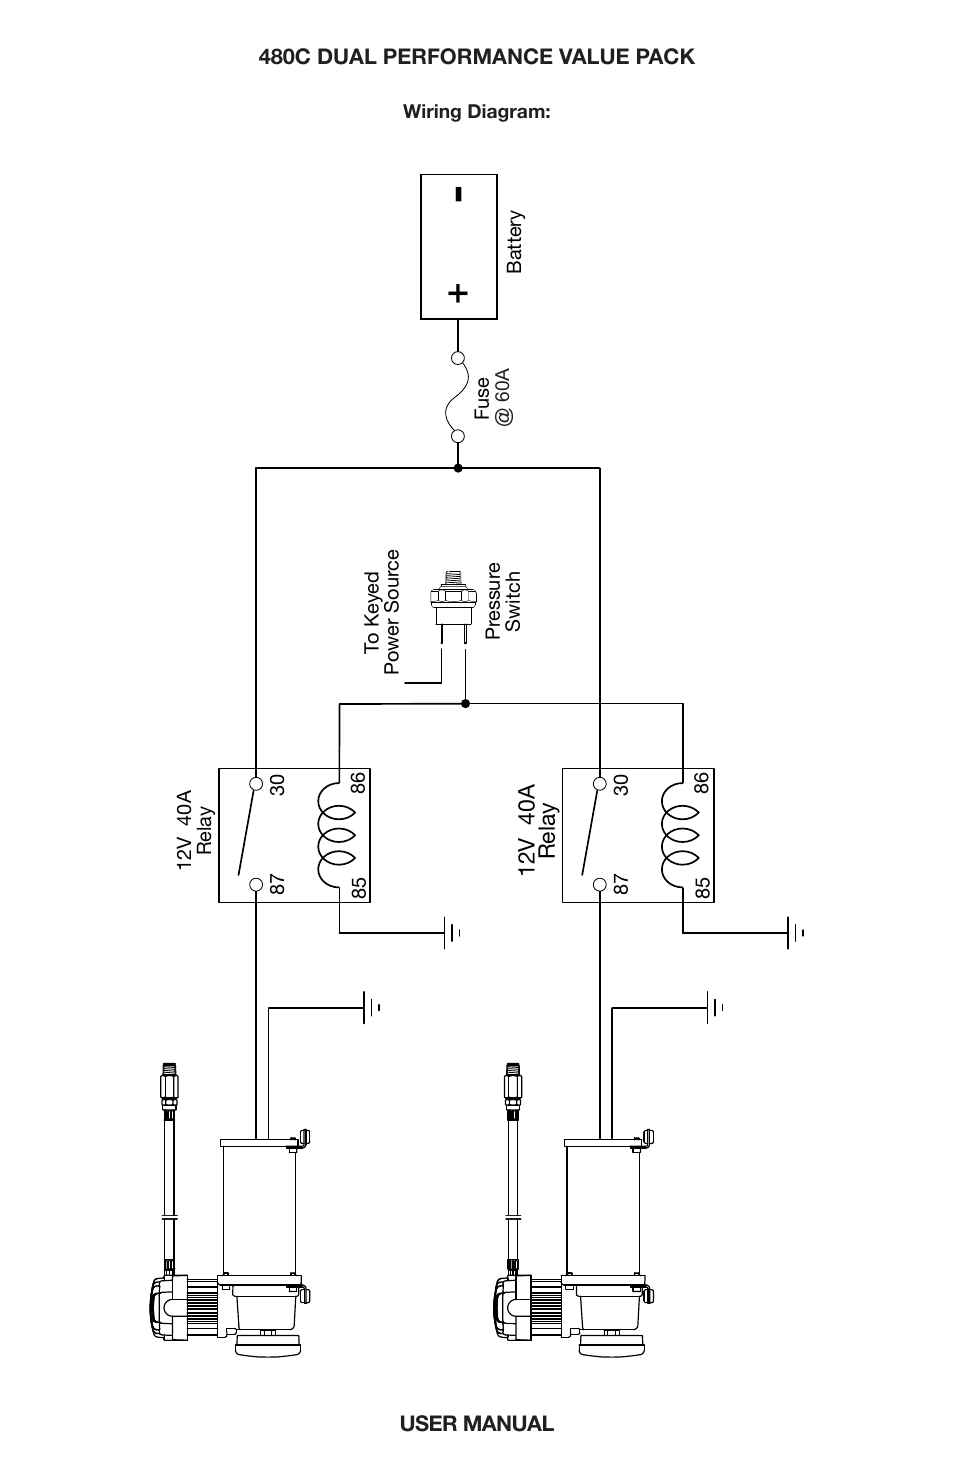 Viair Wiring Diagram - Data Wiring Diagrams